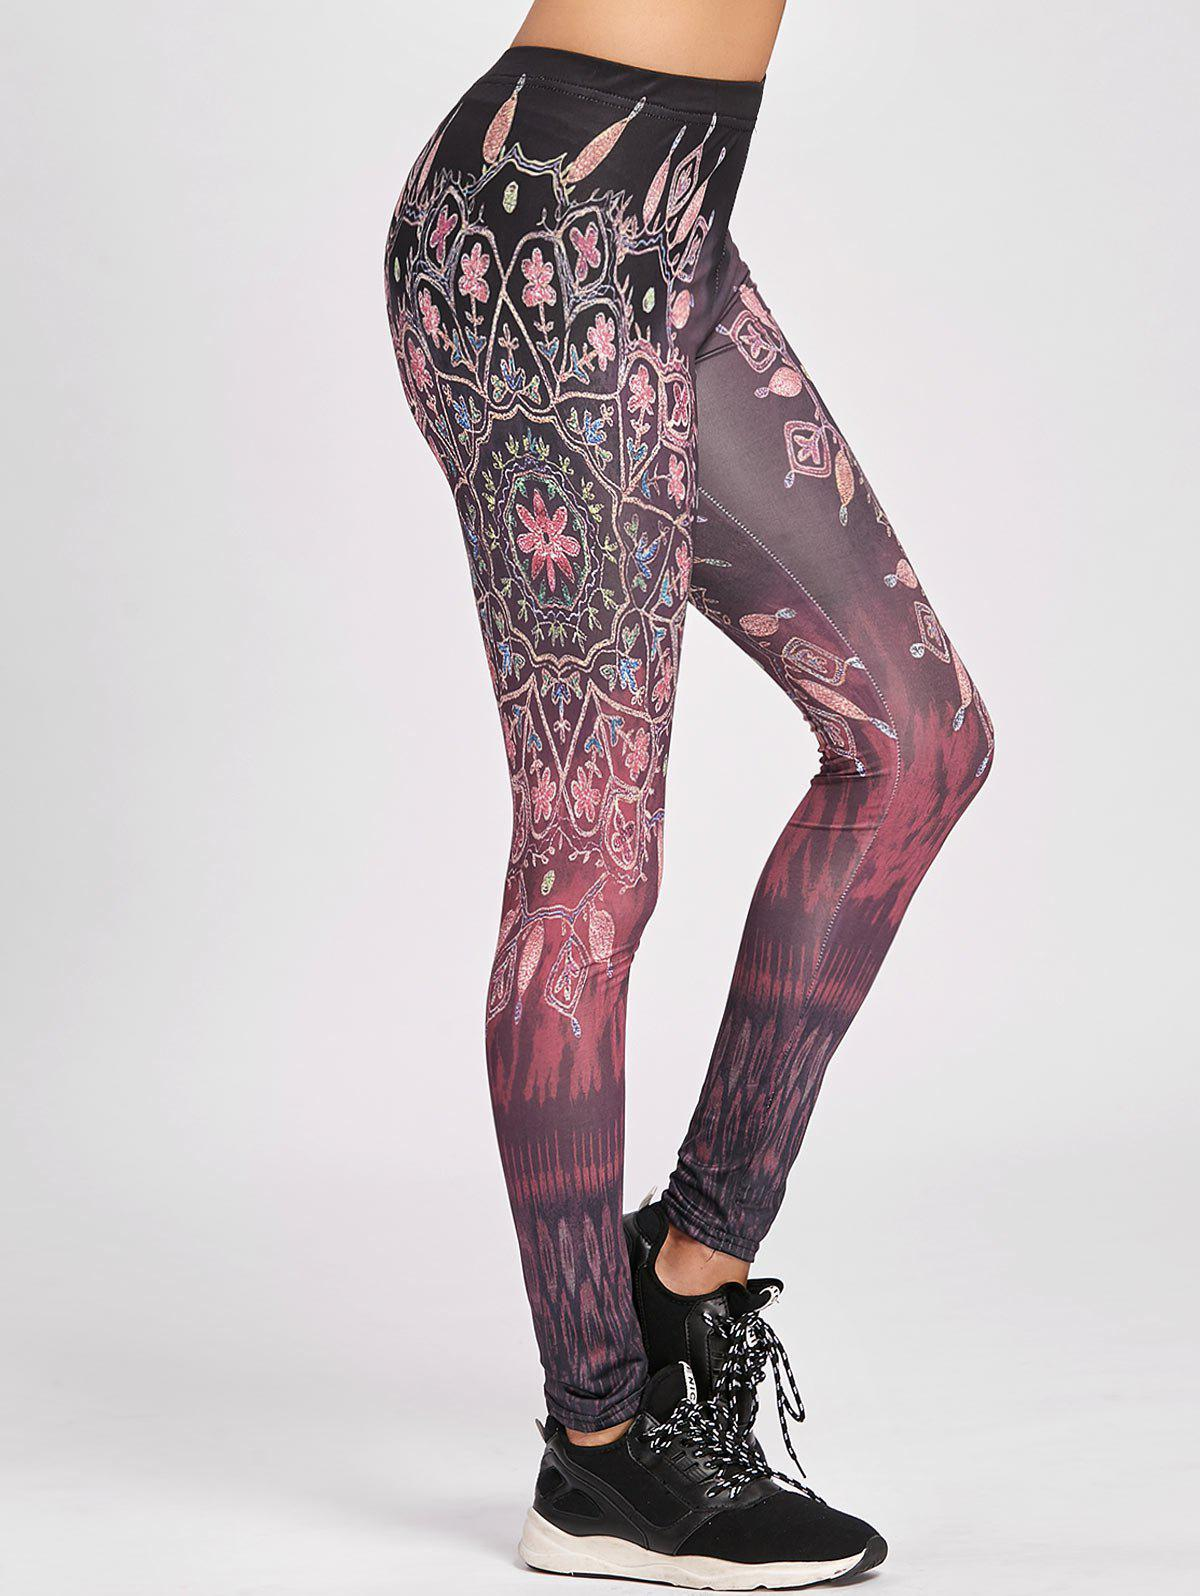 Legging Moulant Imprimé Ethnique - multicolore S